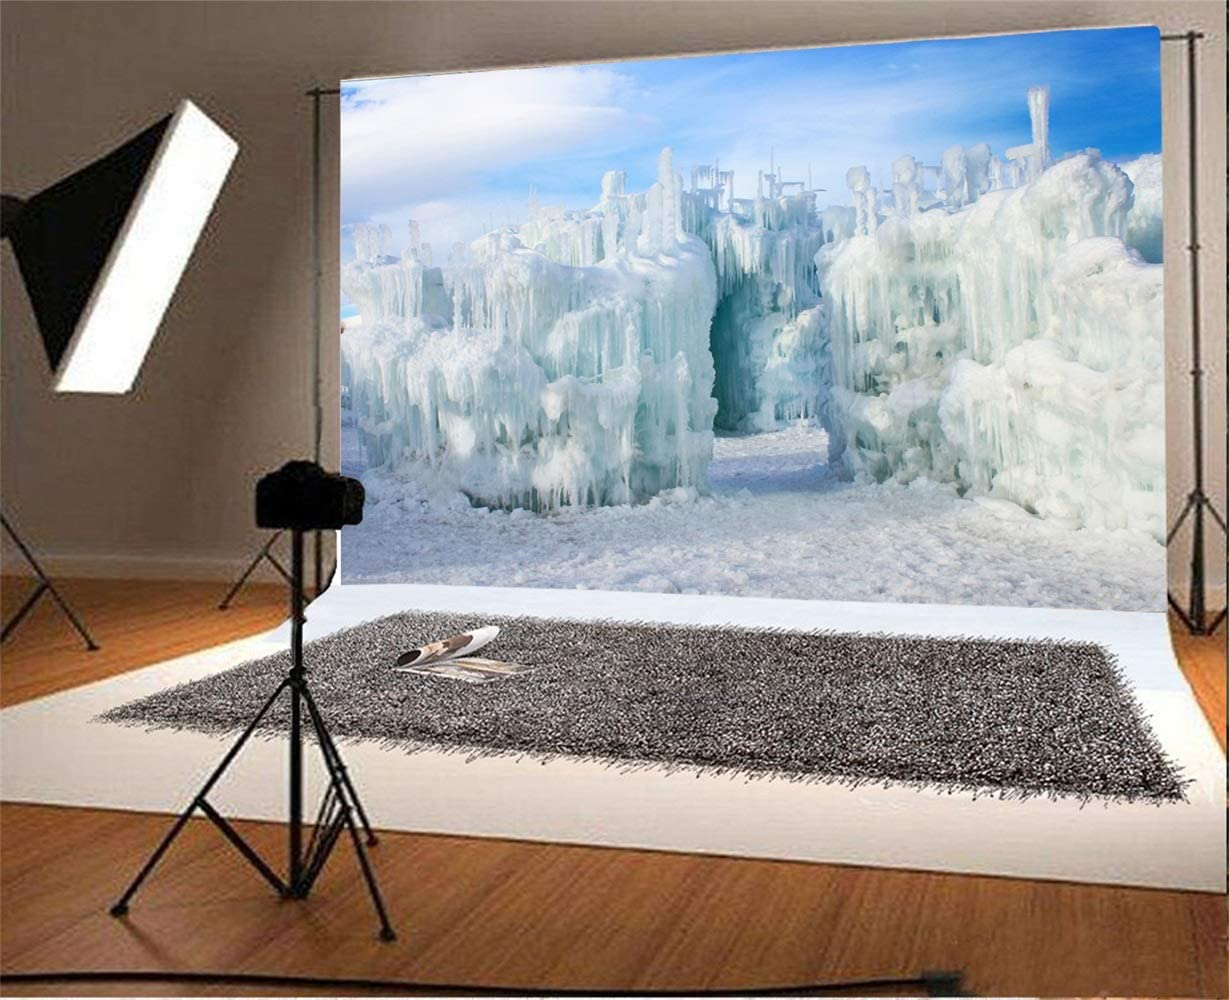 Winter Landscape Backdrop 8x6.5ft Vinyl Dynamic Ice Castle Tunnel Snow Blue Sky Scene Photography Background Freezing Cold Weather Birthday Party Banner Kids Baby Shoot Wedding Portrait